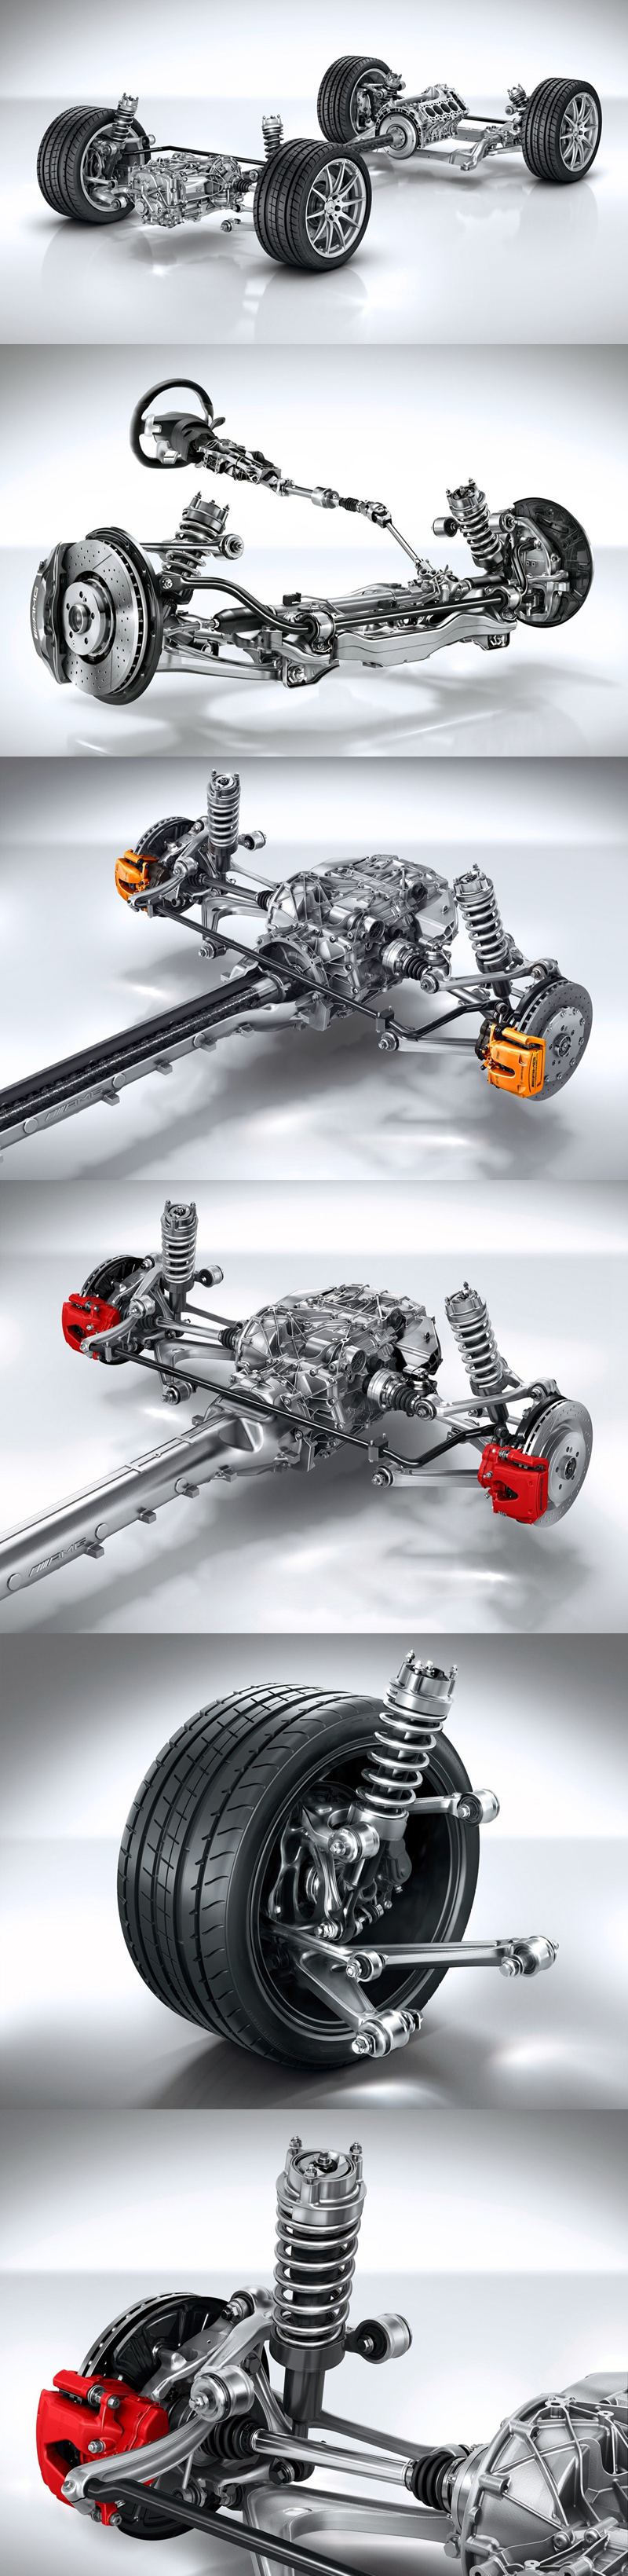 2015_08_Mercedes_Benz_AMG_GT_S_Engine_06_Suspension